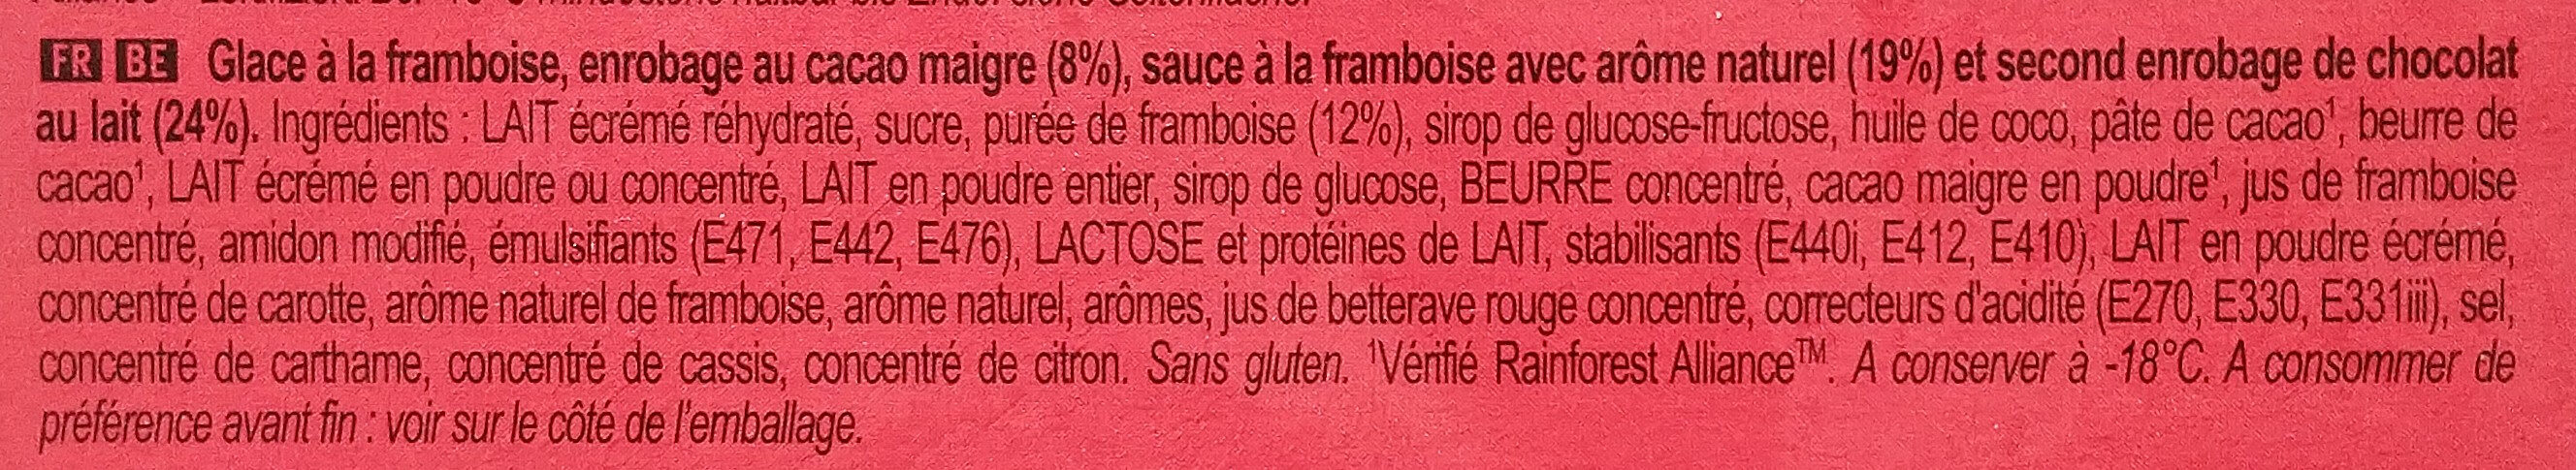 Magnum Batonnet Glace Double Framboise x4 352ml - Ingredients - fr